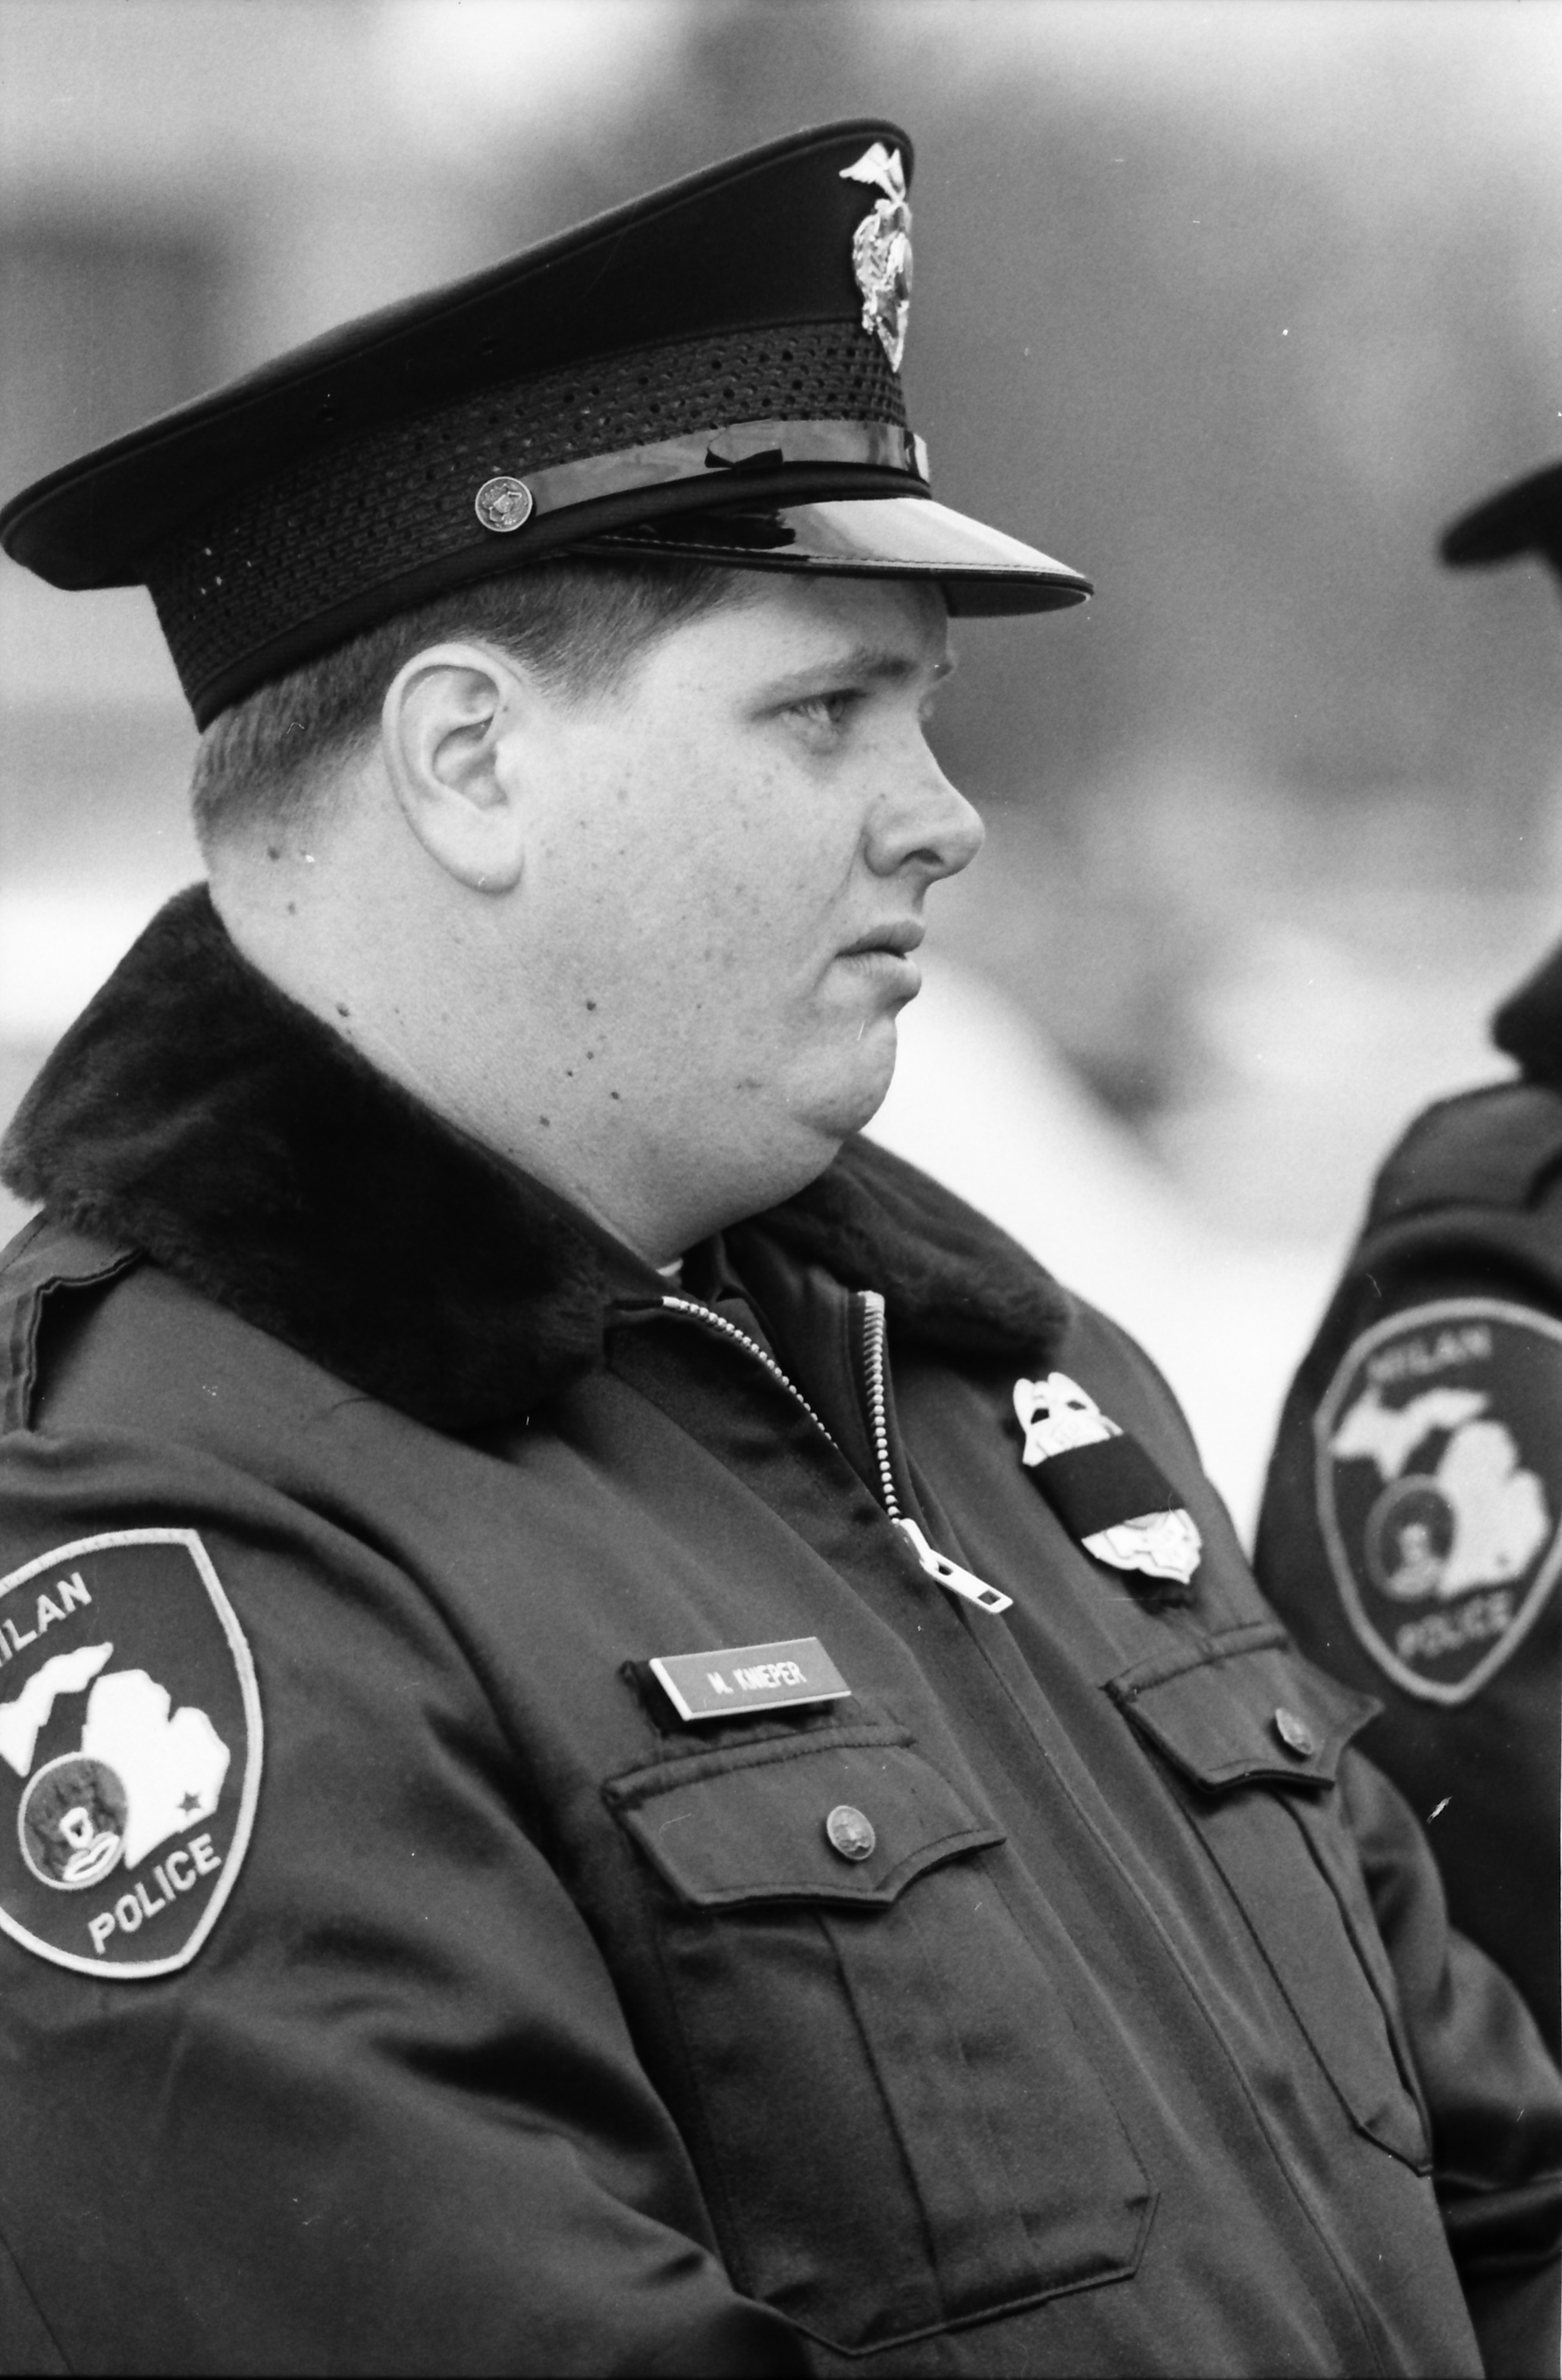 Mike Knieper Honors Officer Steve Reuther at His Memorial, February 1992 image